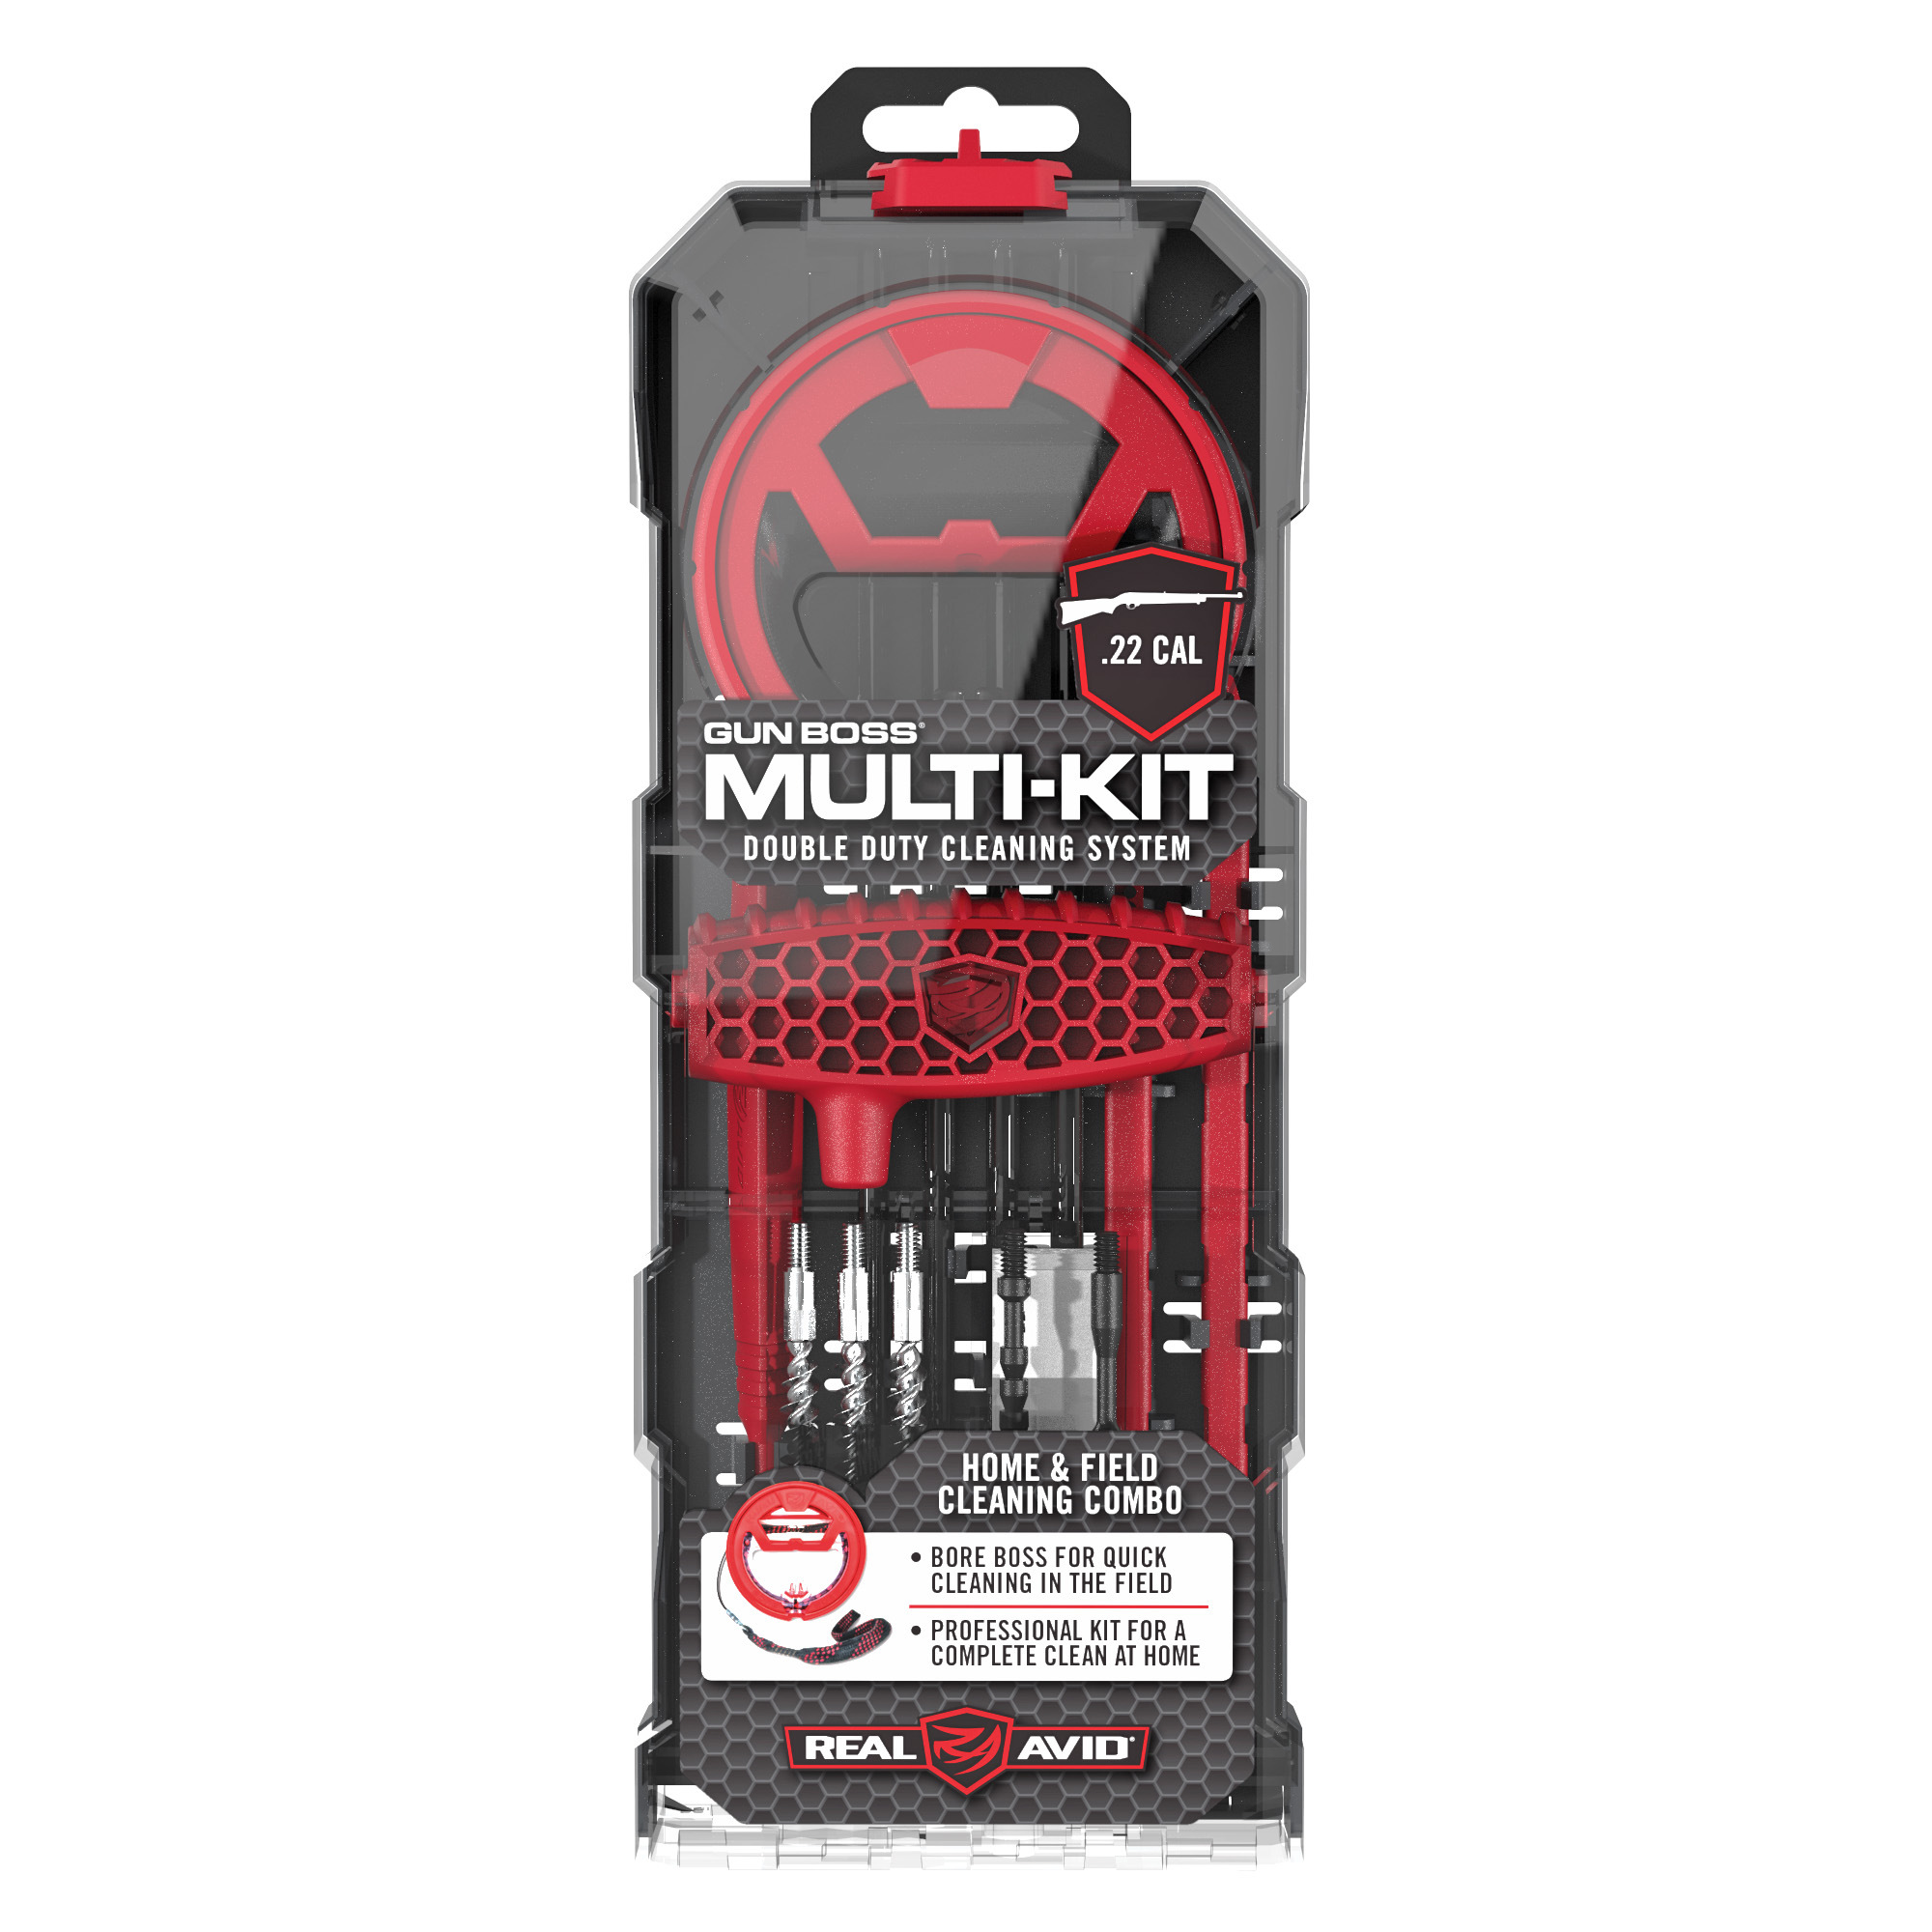 Real Avid Gun Boss Multi Kt 22cal